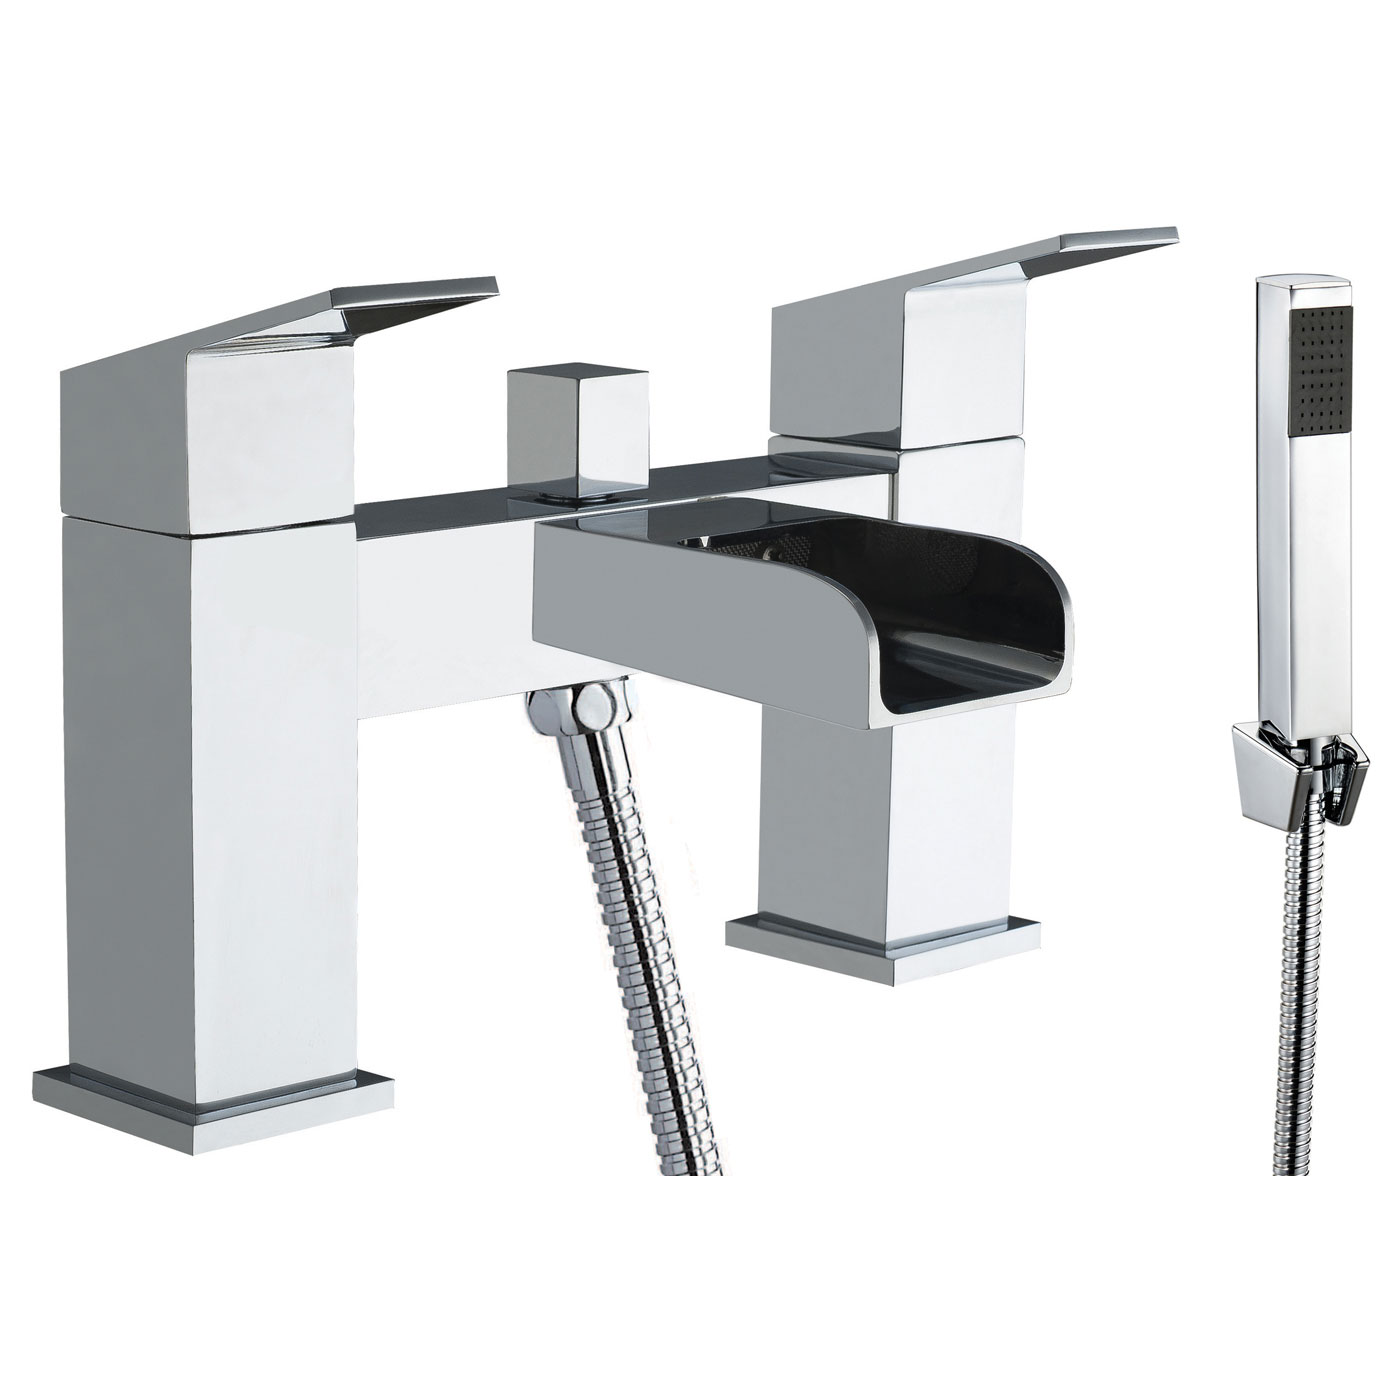 JTP Gleam Deck Mounted Bath Shower Mixer Tap with Kit - Chrome